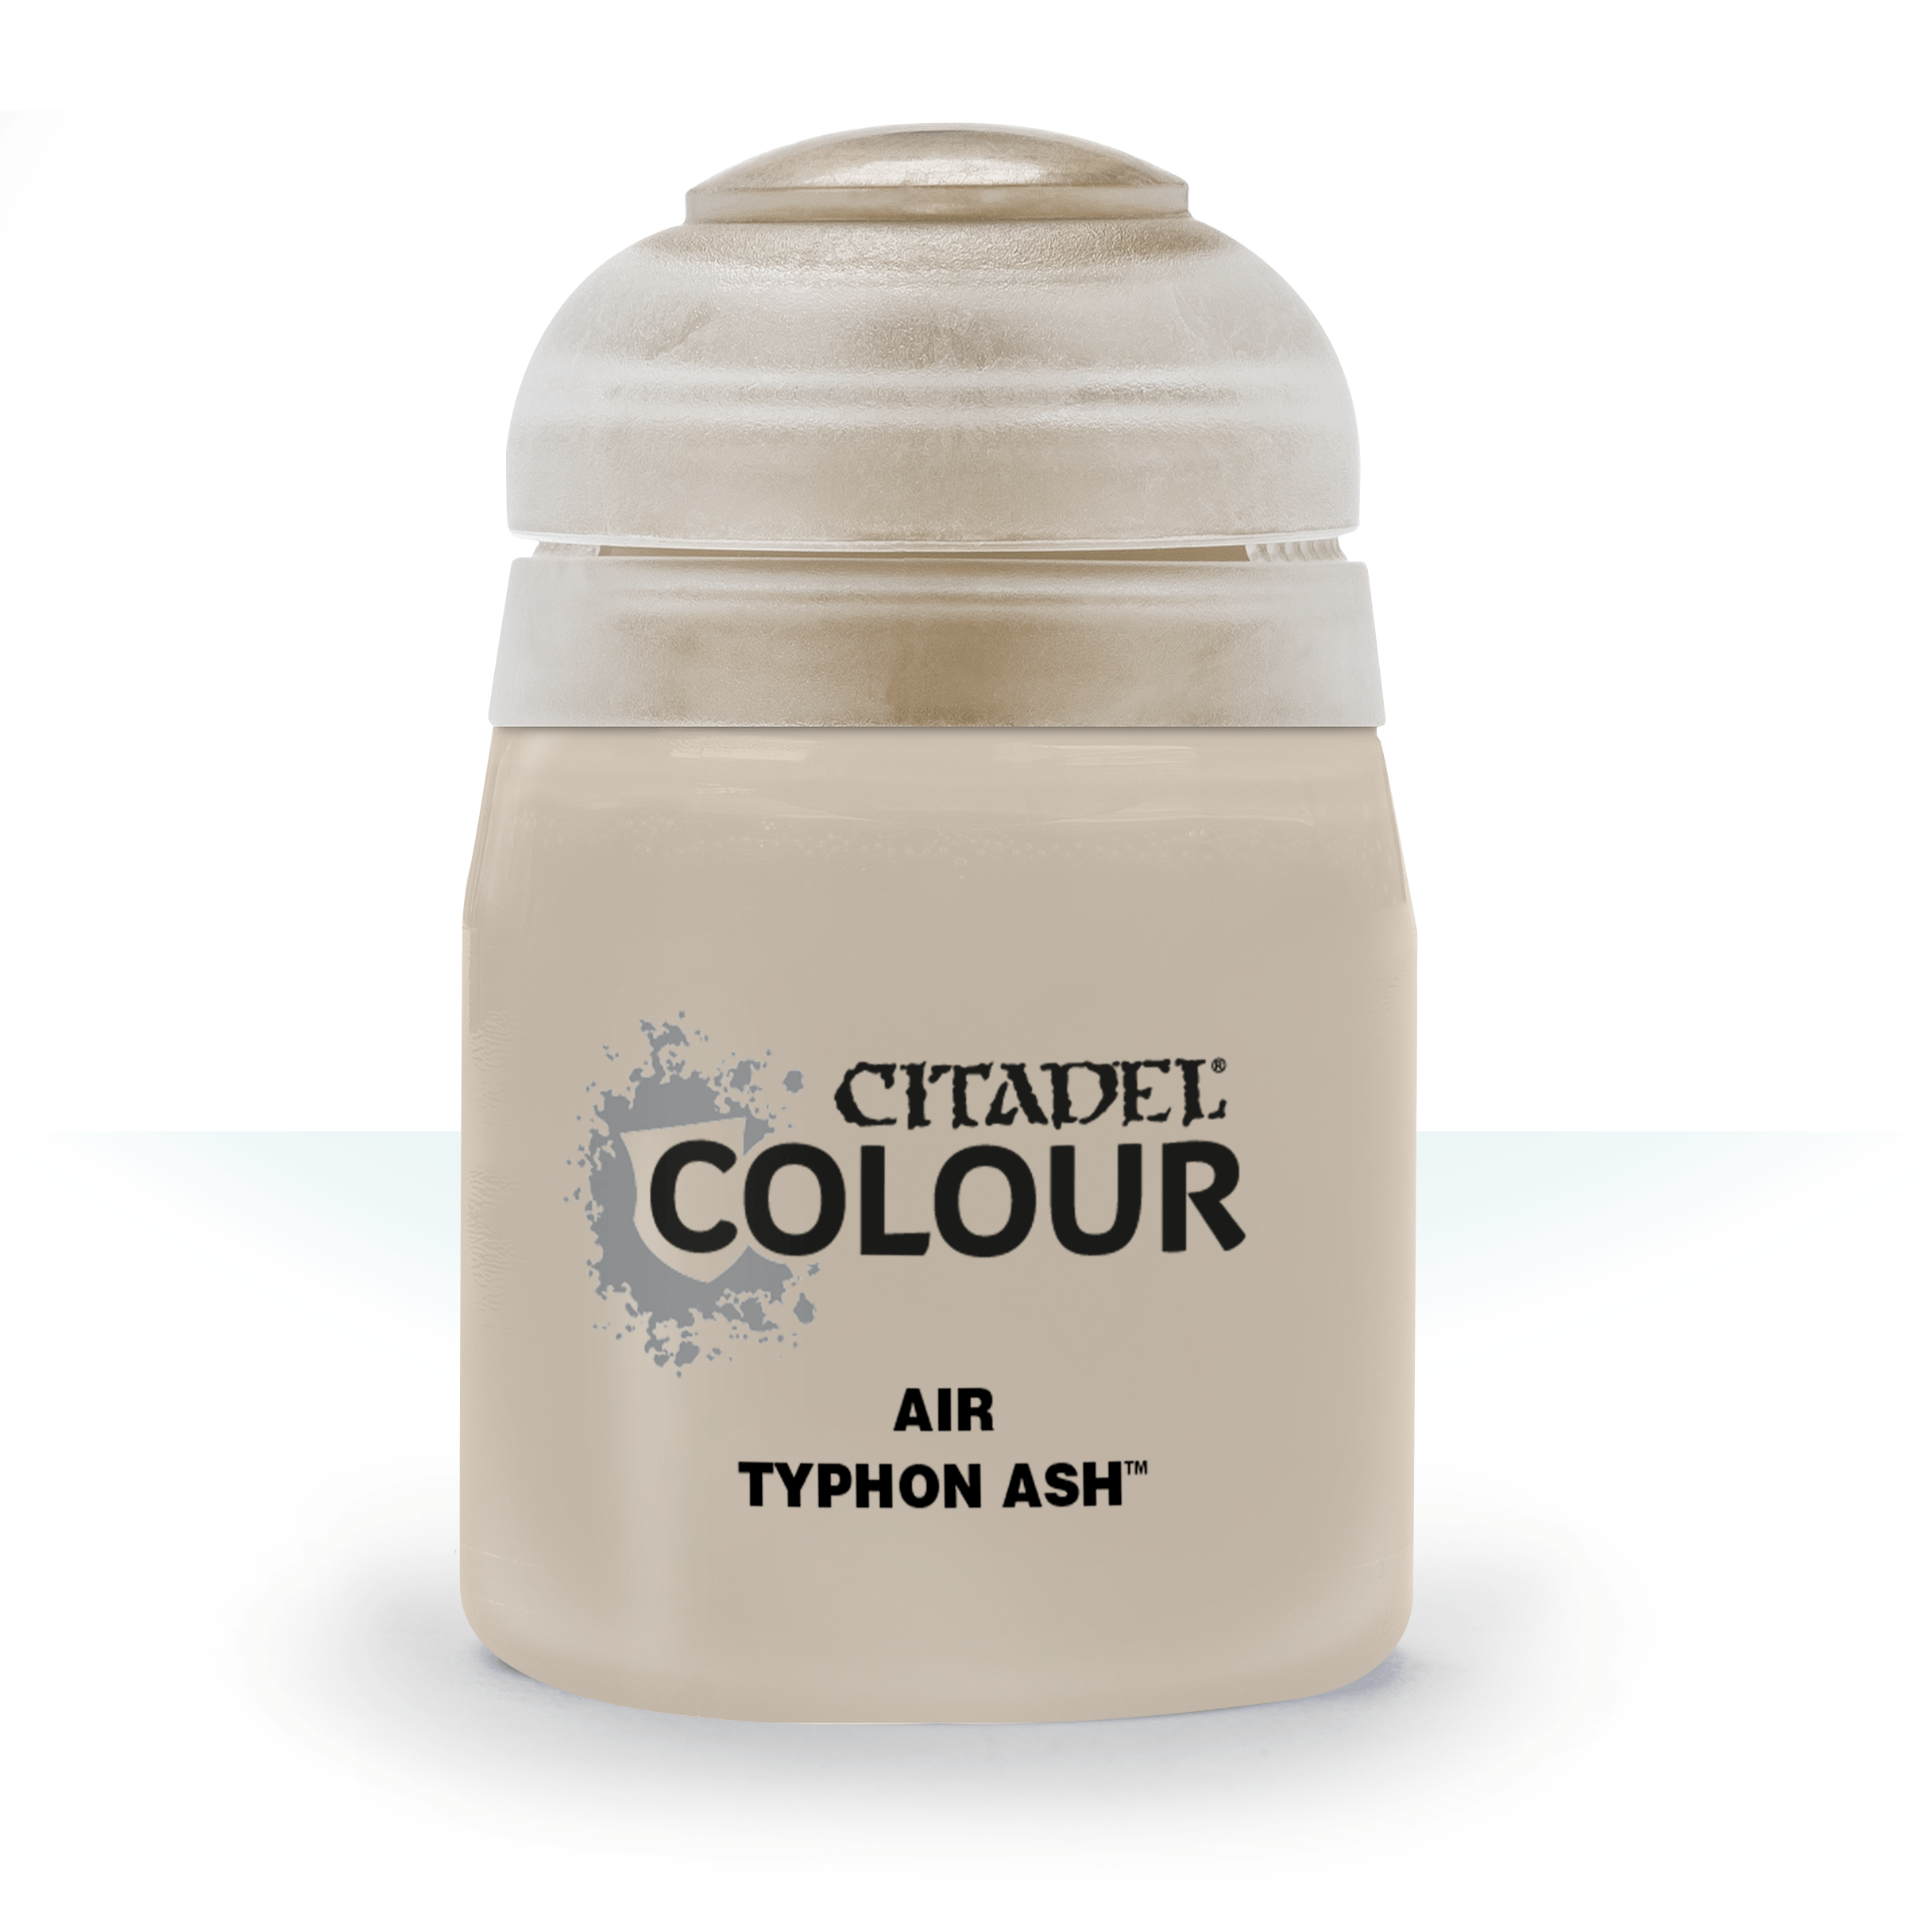 Citadel Airbrush Paints: Typhon Ash